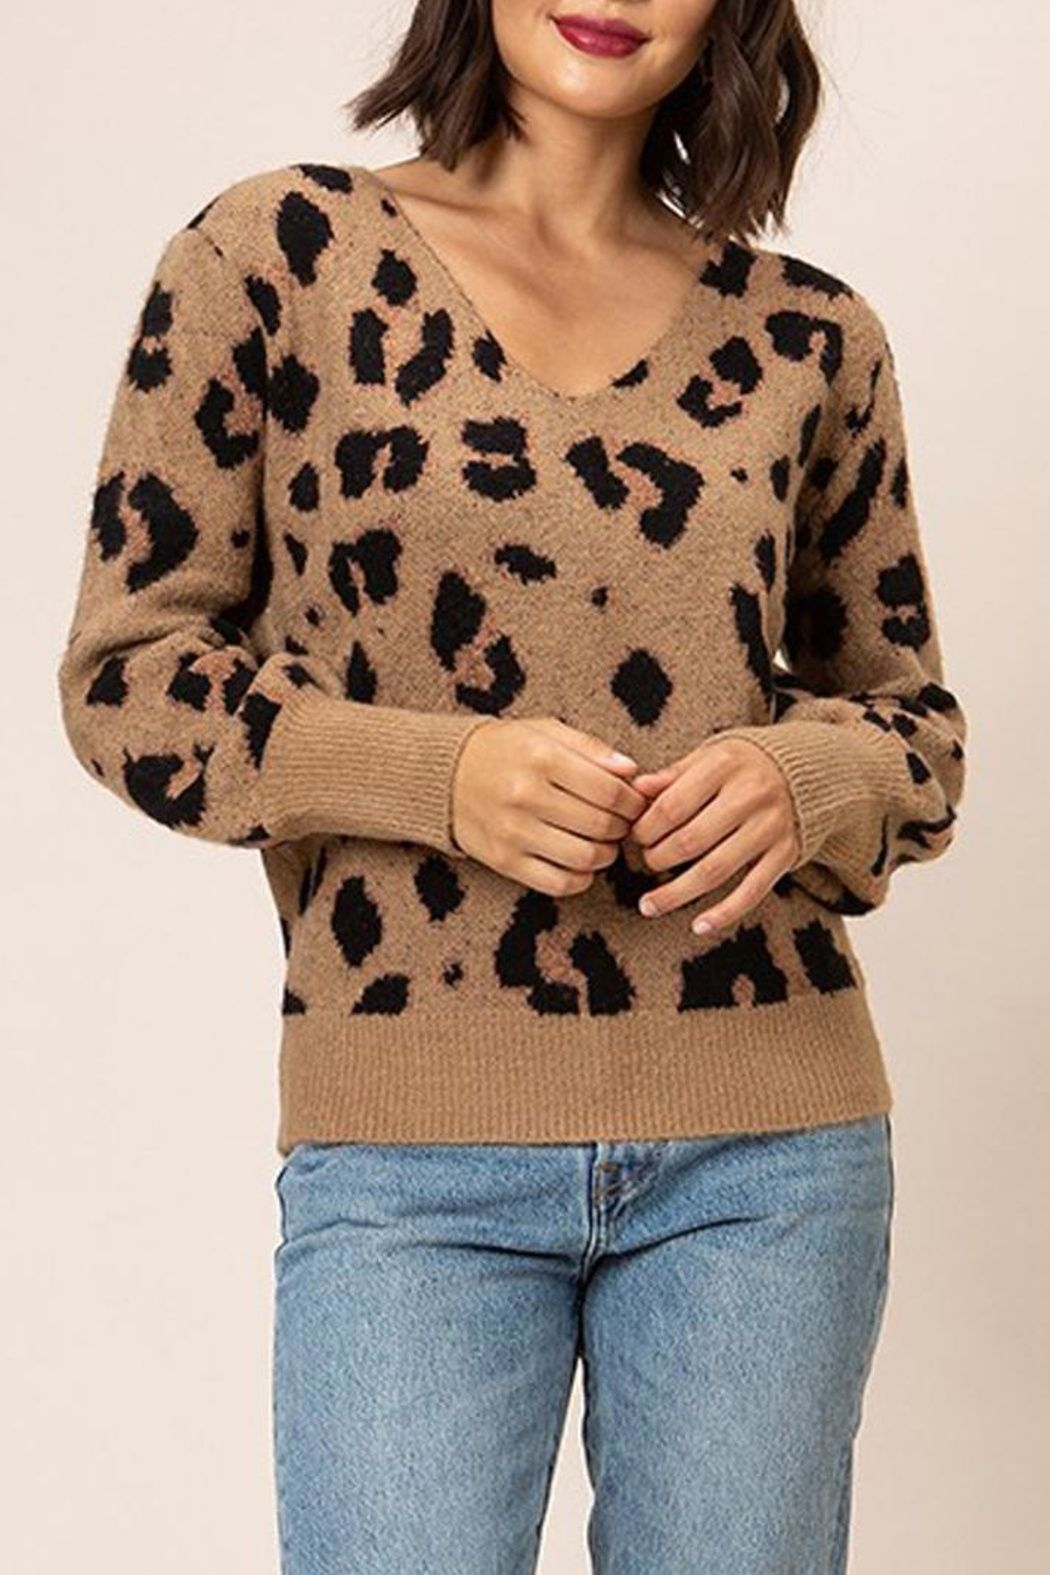 67238b9075 Who doesn t love a leopard print sweater!